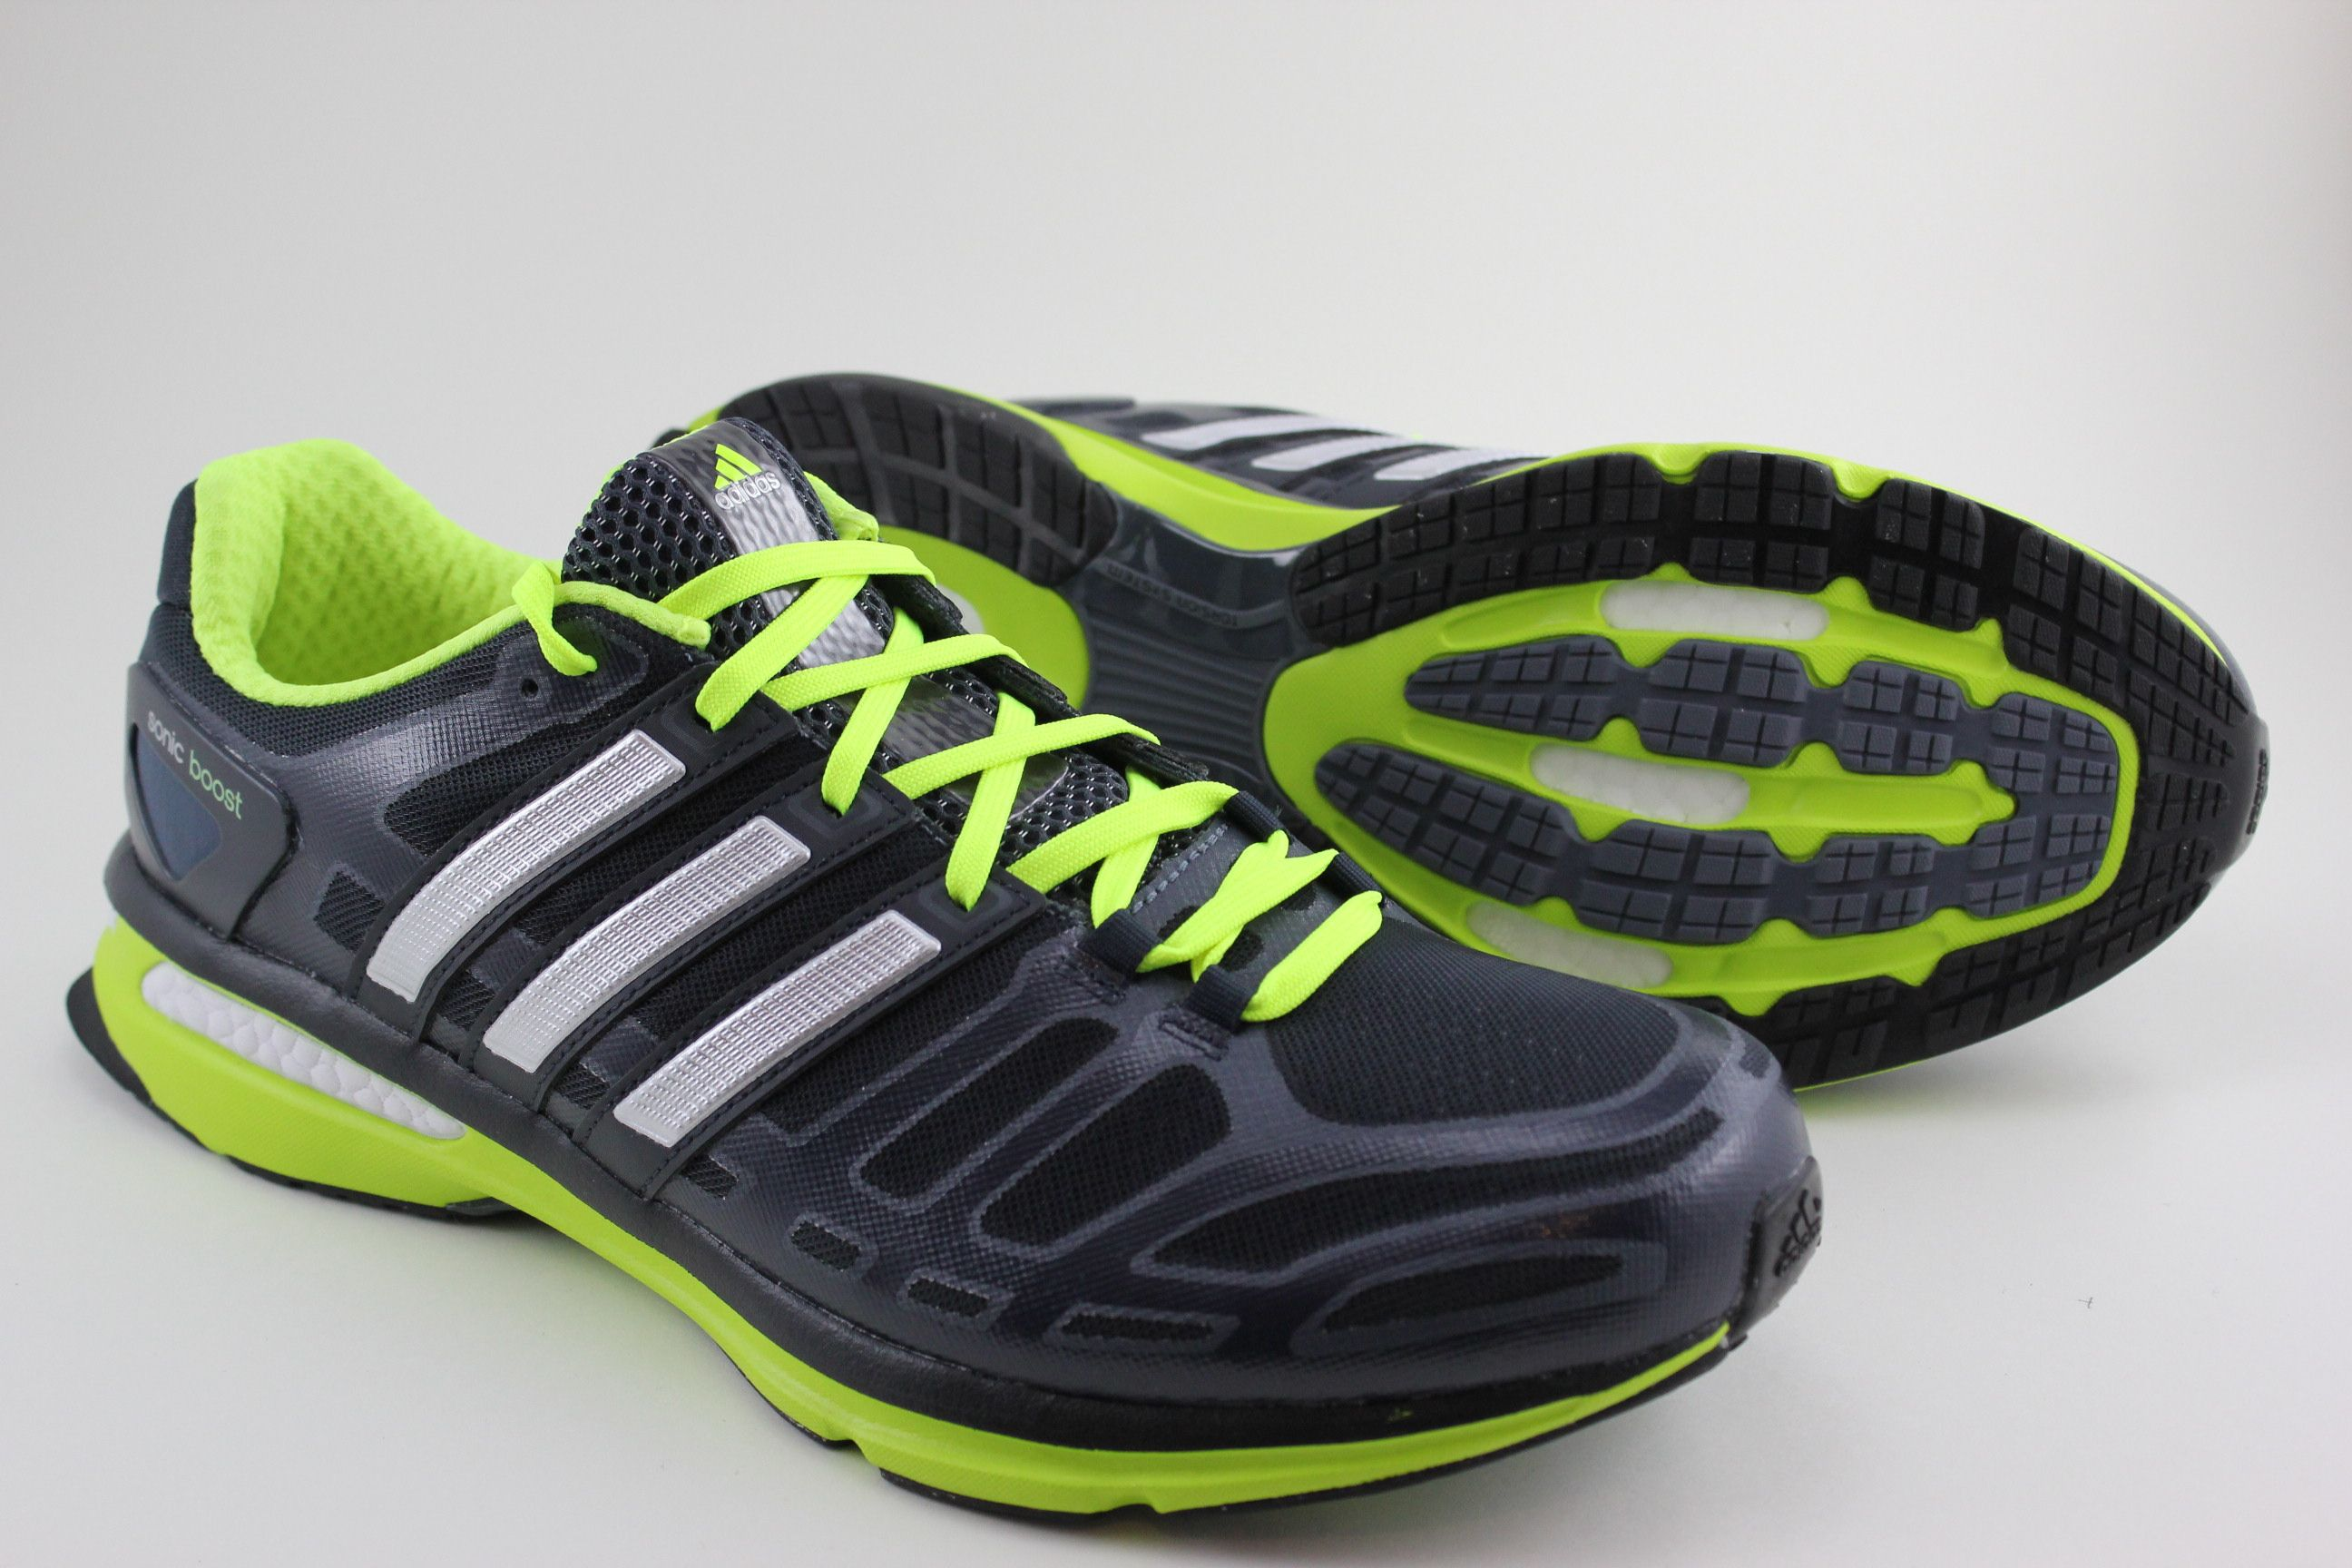 adidas sonic boost : My running shoes (2014 ) | Adidas sonic